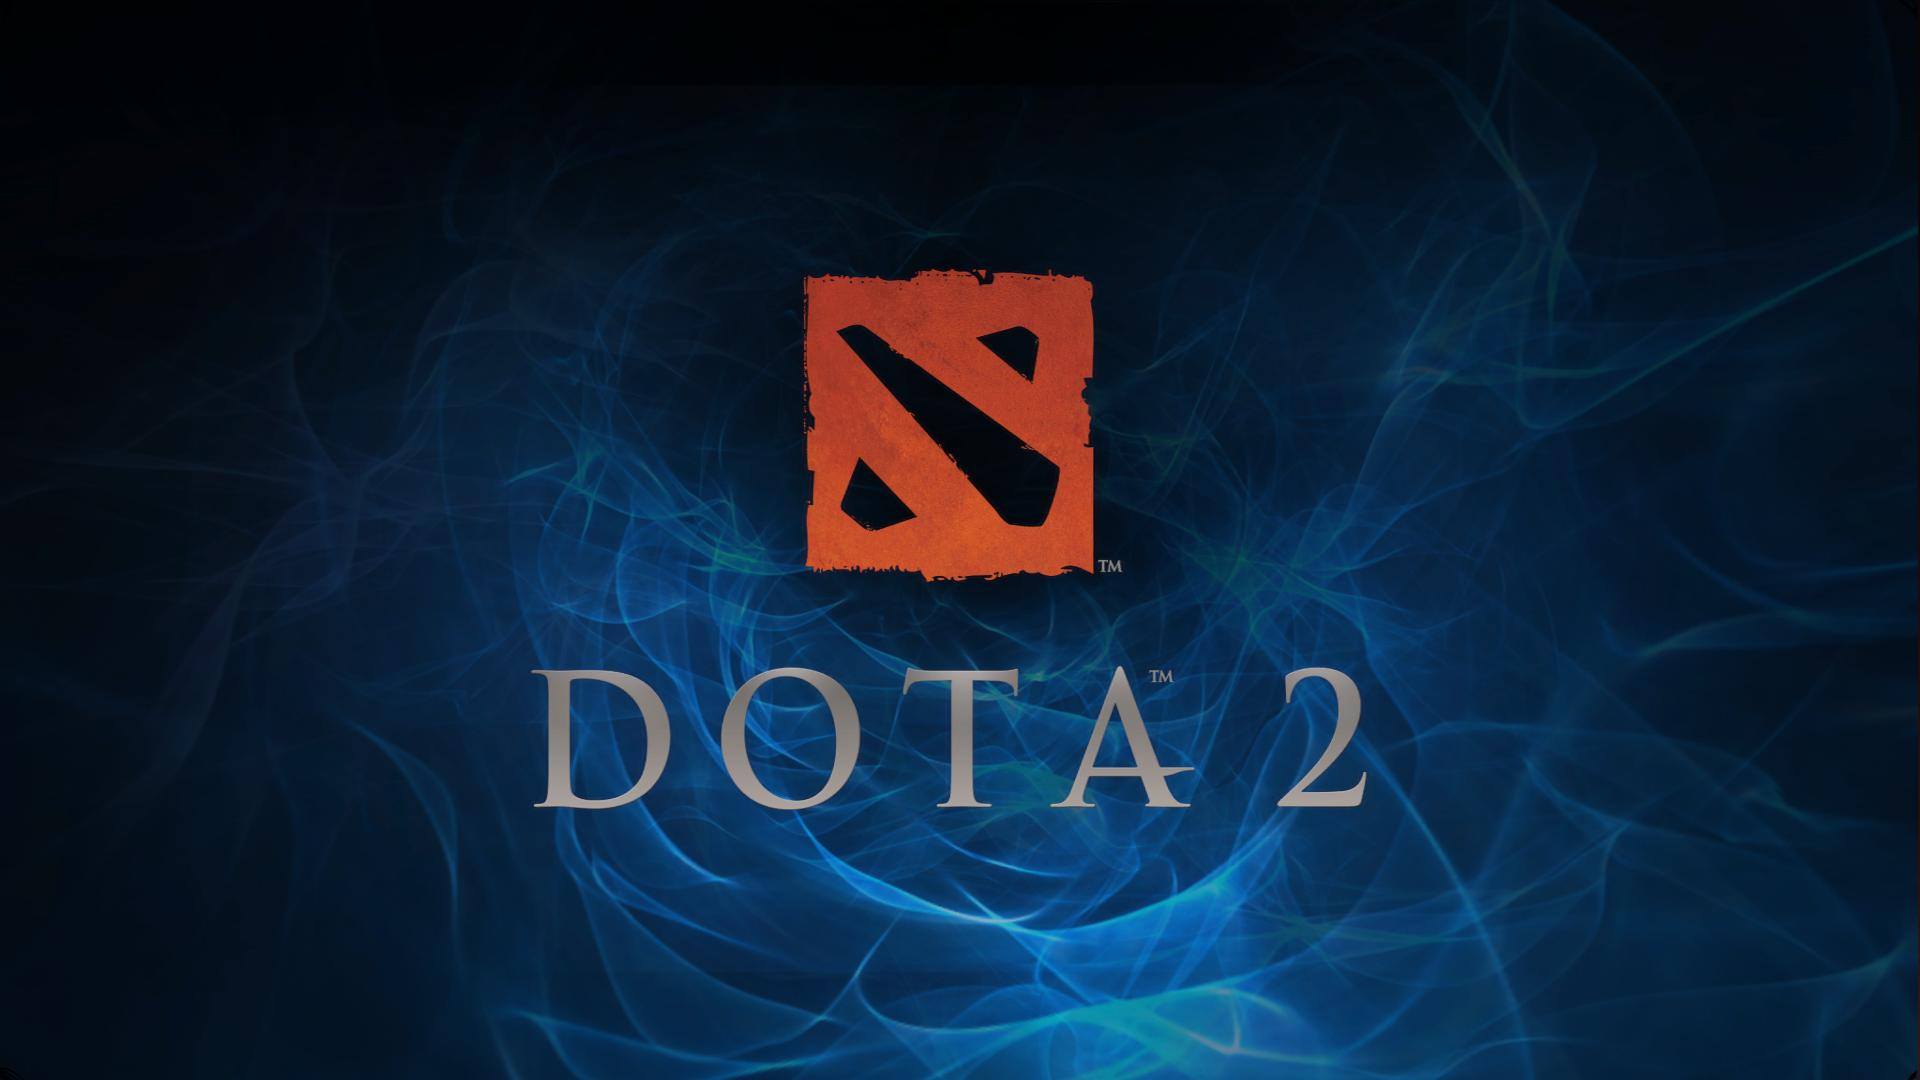 Dota 2 Tournament The International 2014 Prize Pool is now over 10 Million Dollars